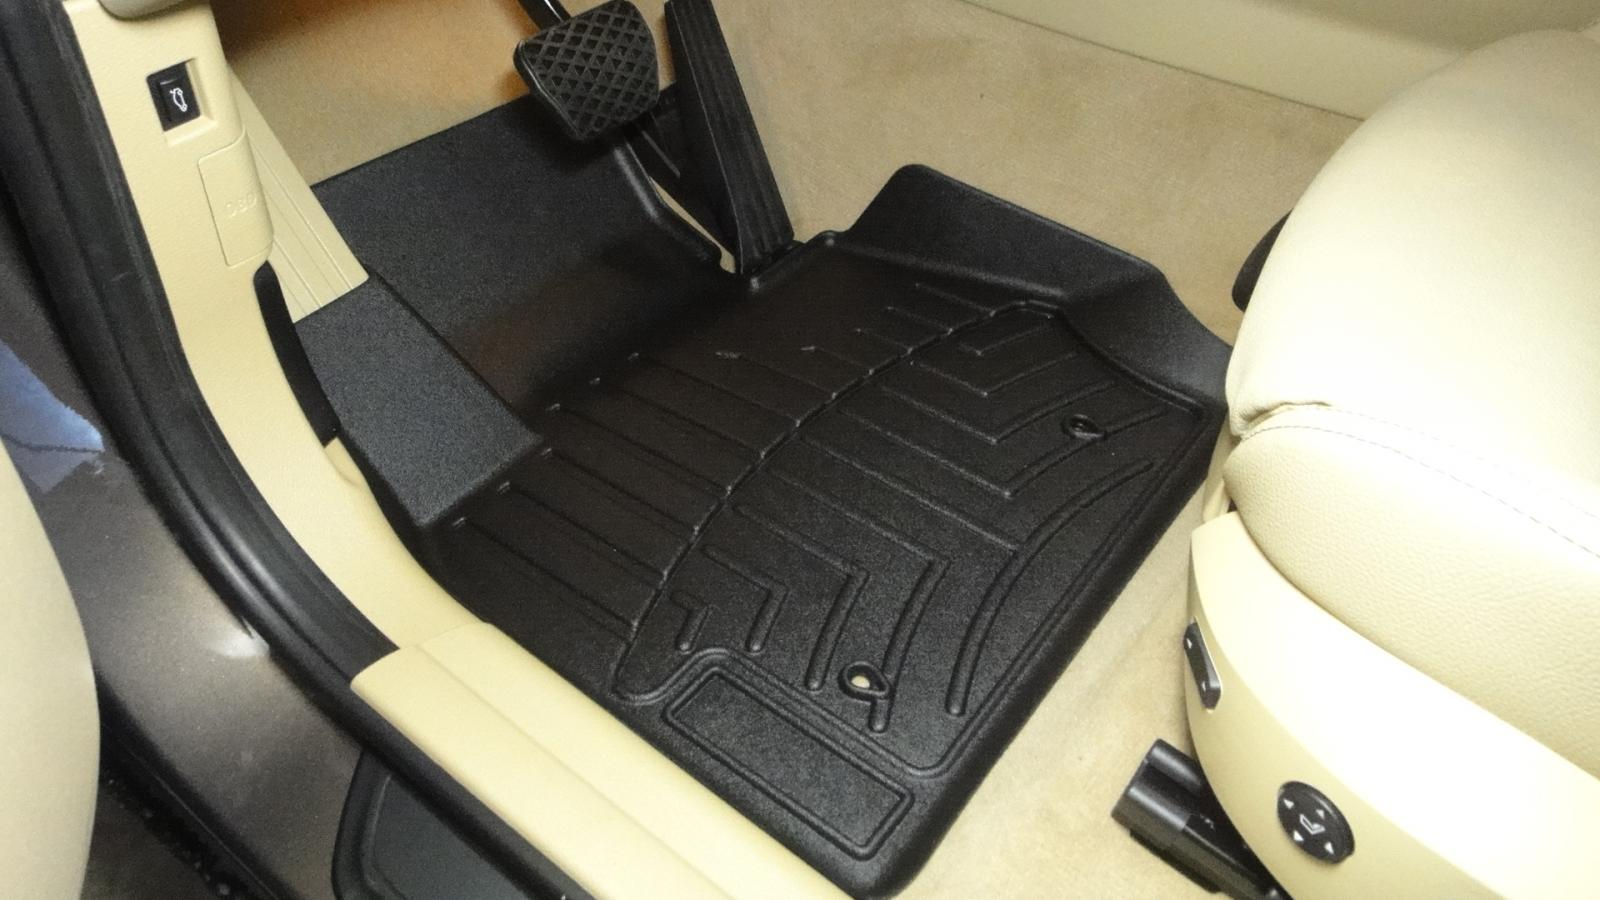 Weathertech mats australia - At The Corner Of Each Front Mat Is A Rectangle Where A Cheesy Weathertech Self Adhesive Badge Was Inserted They Pulled Out Easily And Left No Residue